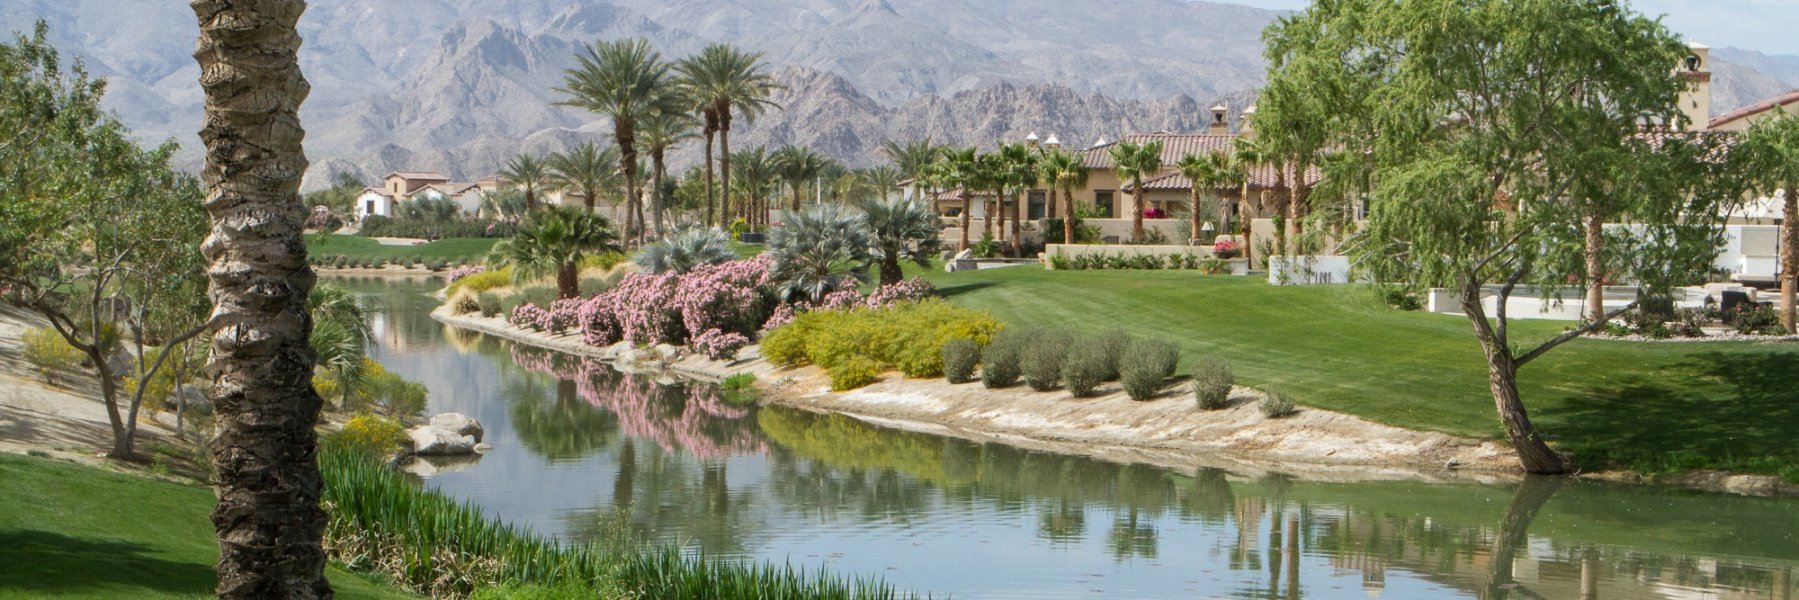 Andalusia Country Club is a community of homes in La Quinta California